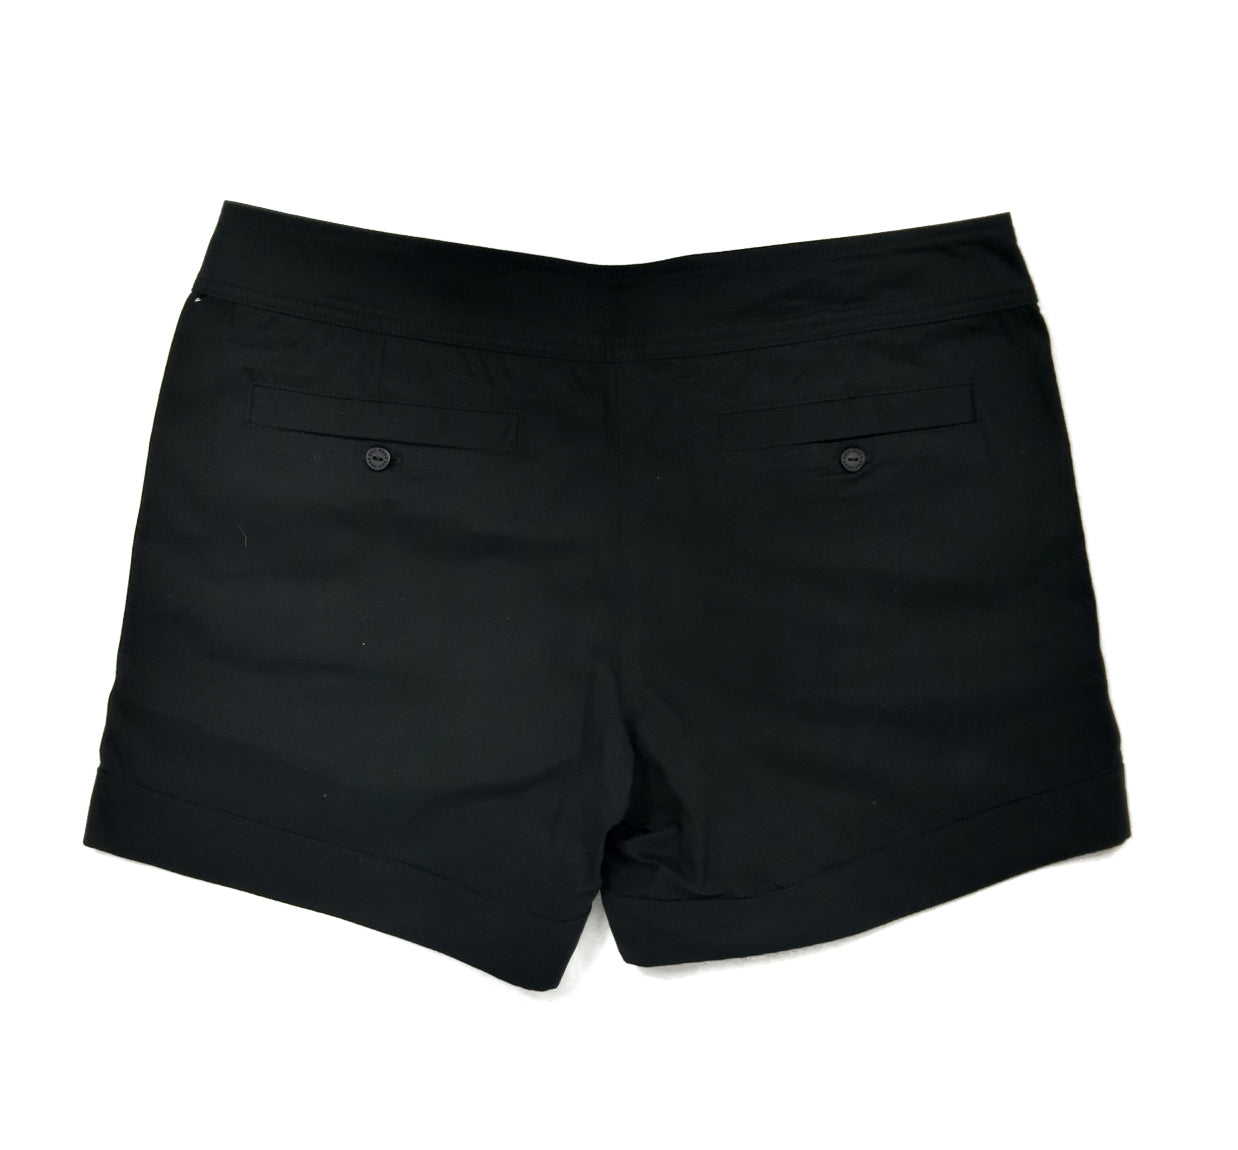 Rosa Cha Shorts with front pockets in Black Size 38 (EU)